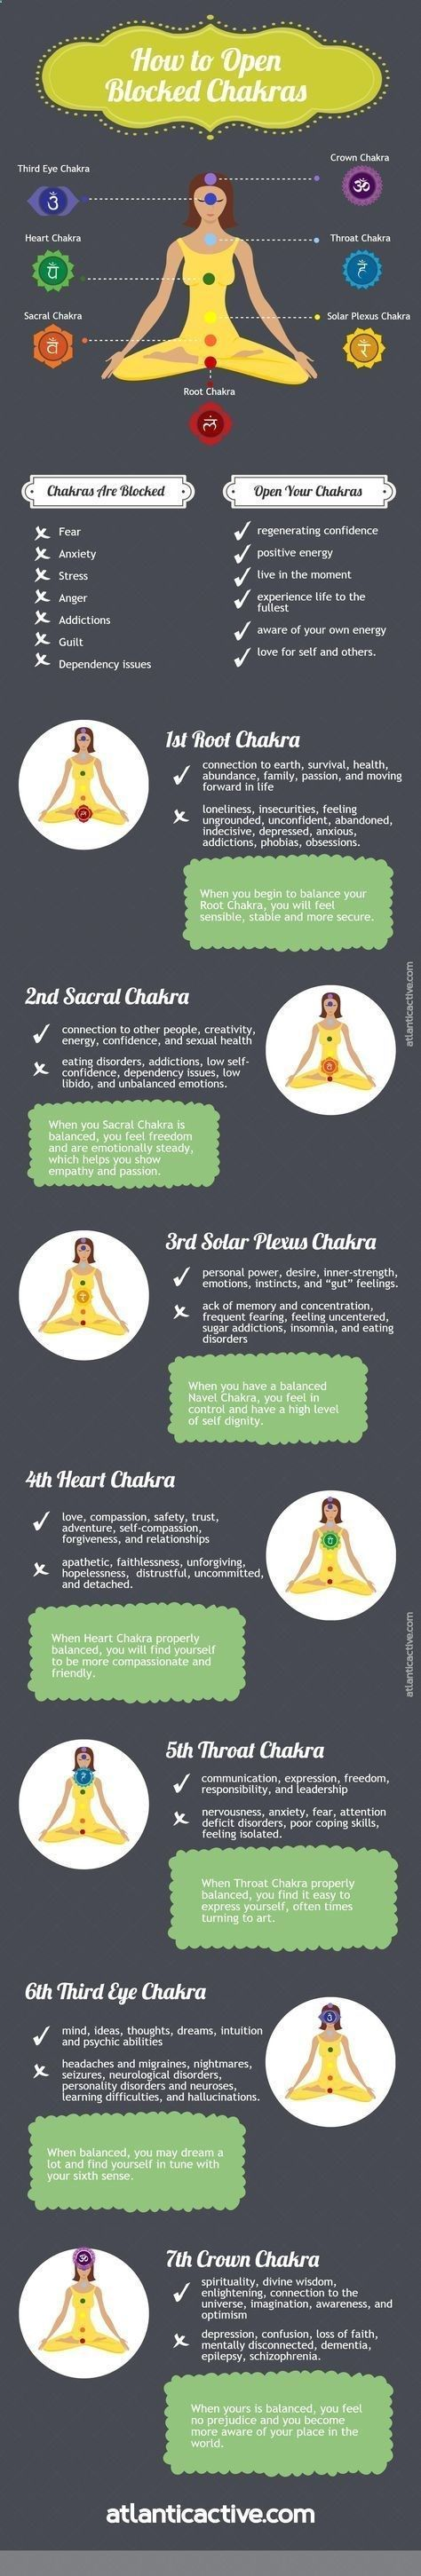 Warning Signs Your Chakras Are Out Of Balance atlanticactive.co.... How to Fix Them? Chakra Opening: Things You Can Do To Open and Heal Each Chakra. #ChakraHealing